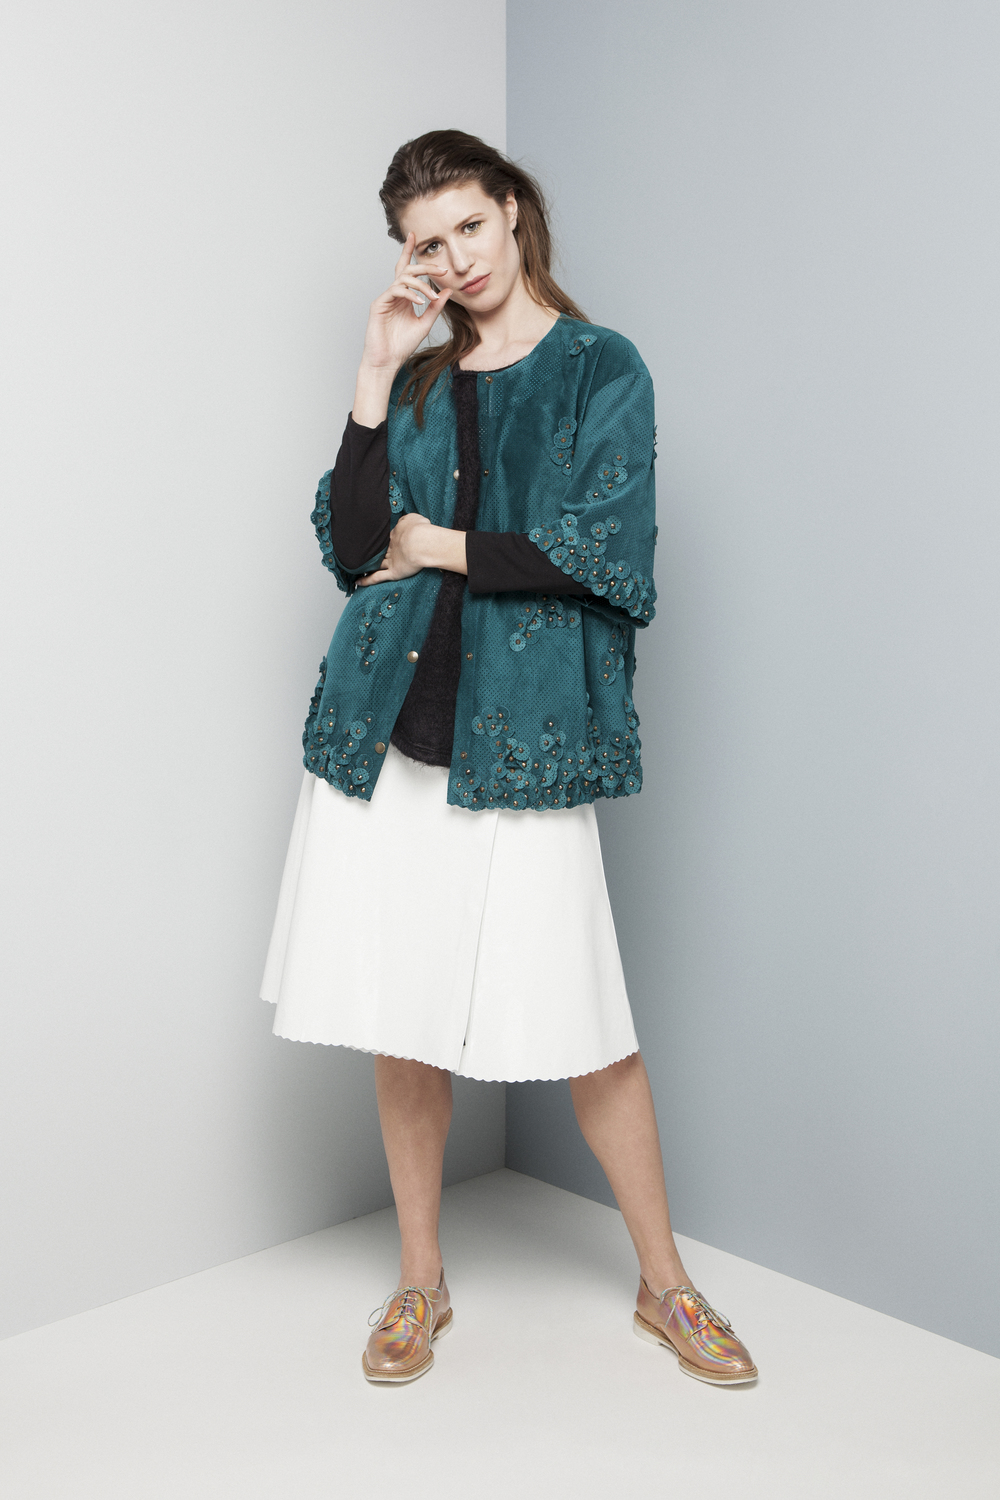 Manley AW14 Rylie Mohair Jumper (black) €220 and Elsie Perforated Coat (teal) €599 and SS14 Erin Patent Skirt (white) €430.jpg